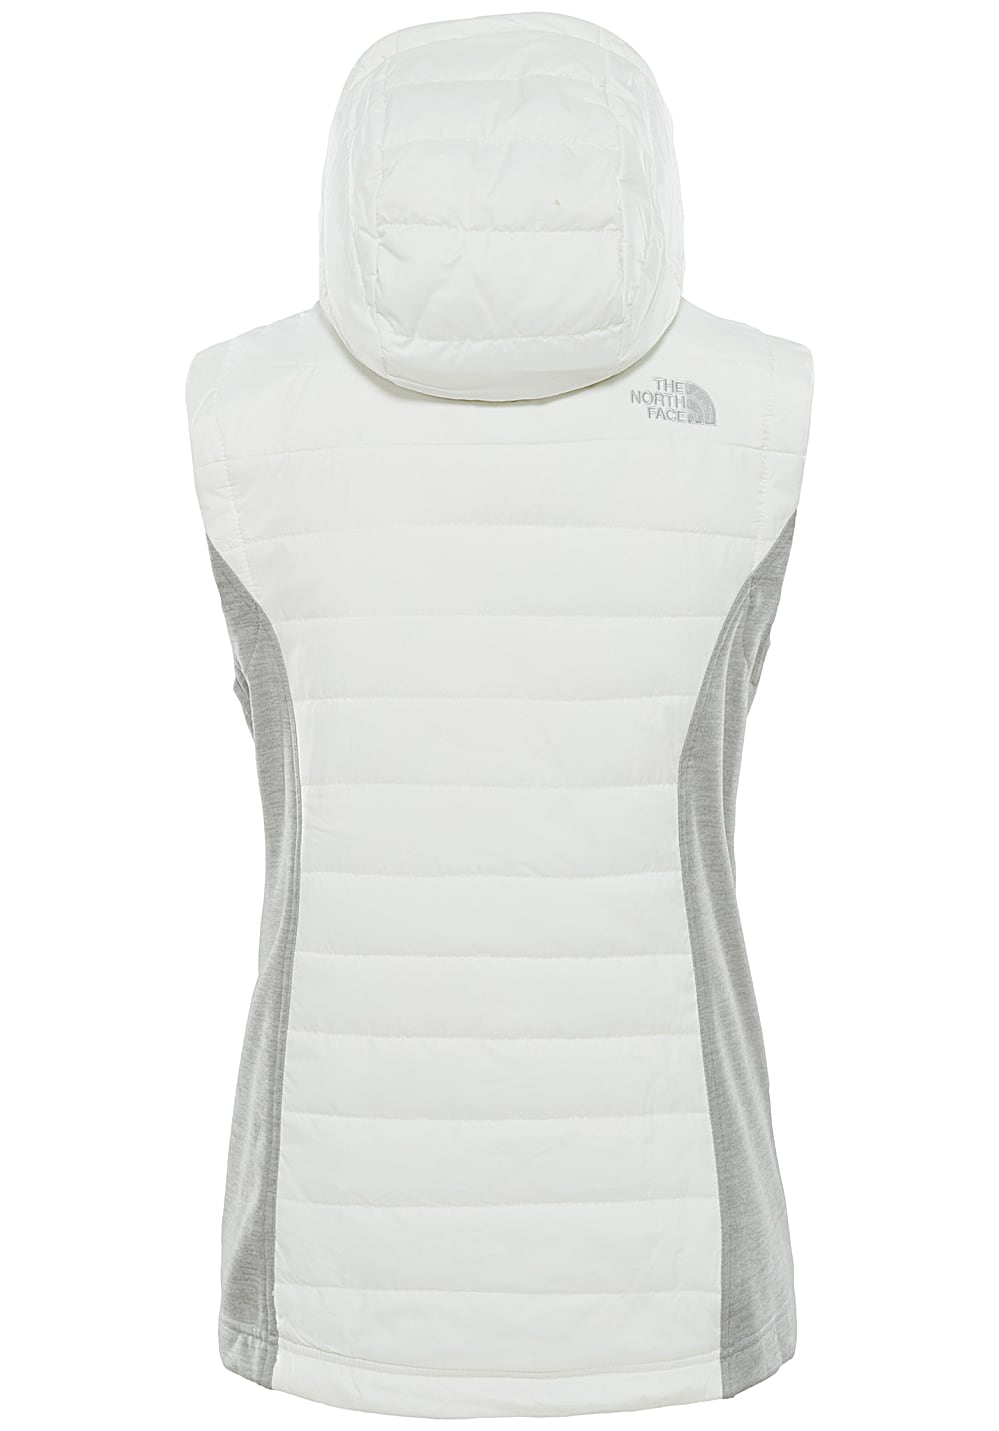 5e1e7bdbc THE NORTH FACE Mashup Pl Vst - Vest for Women - White